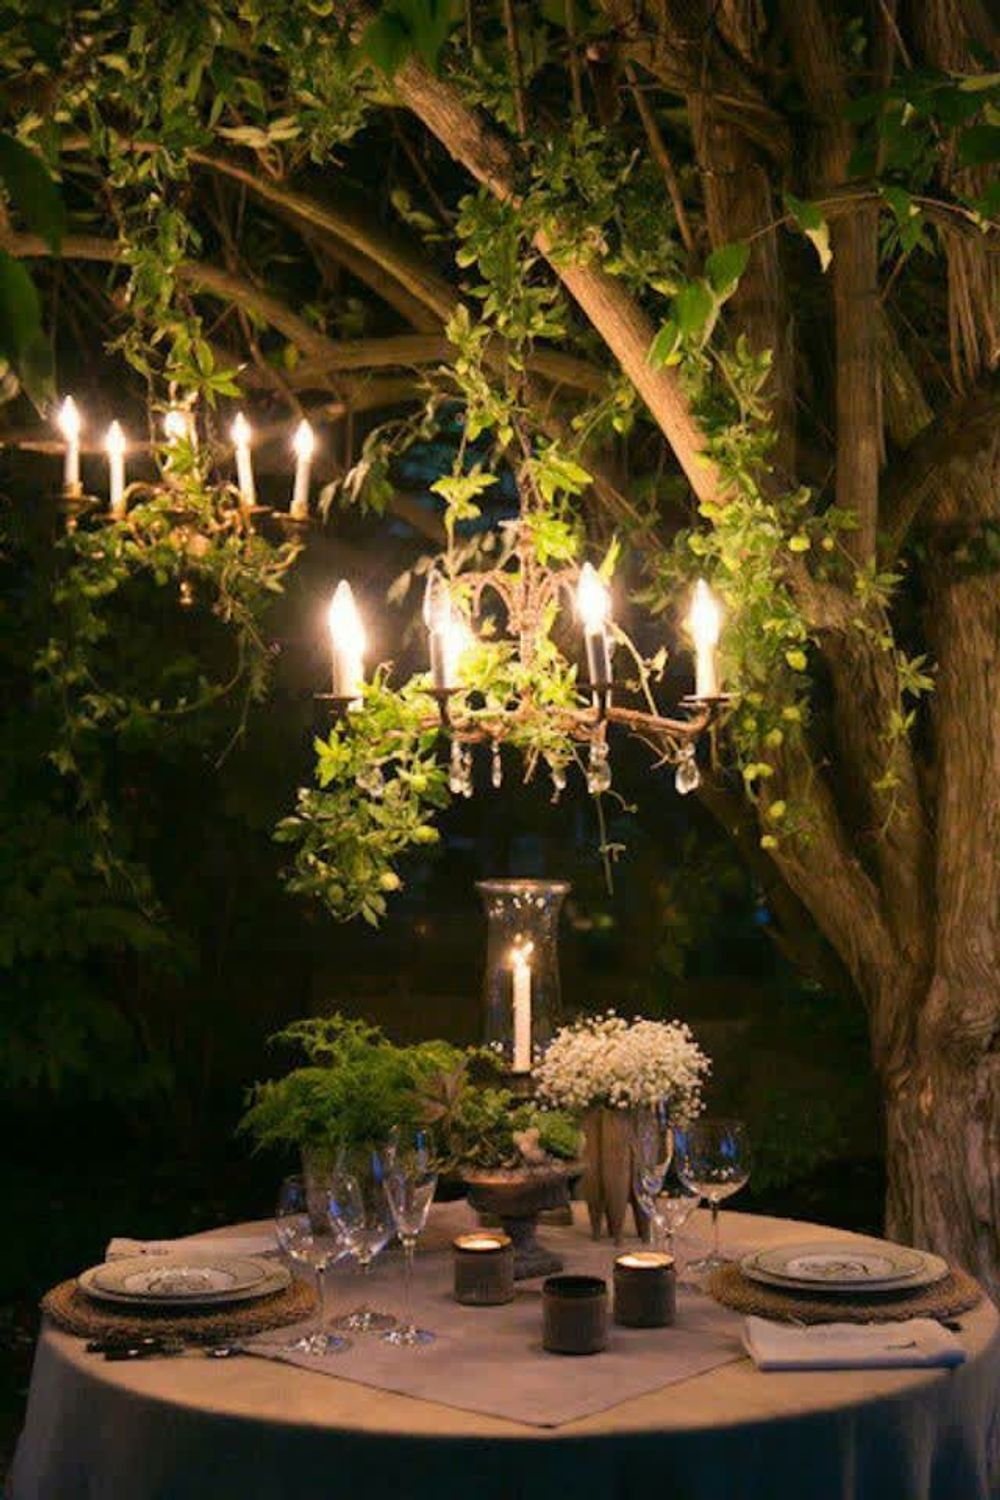 Candle Night dinings Around The World